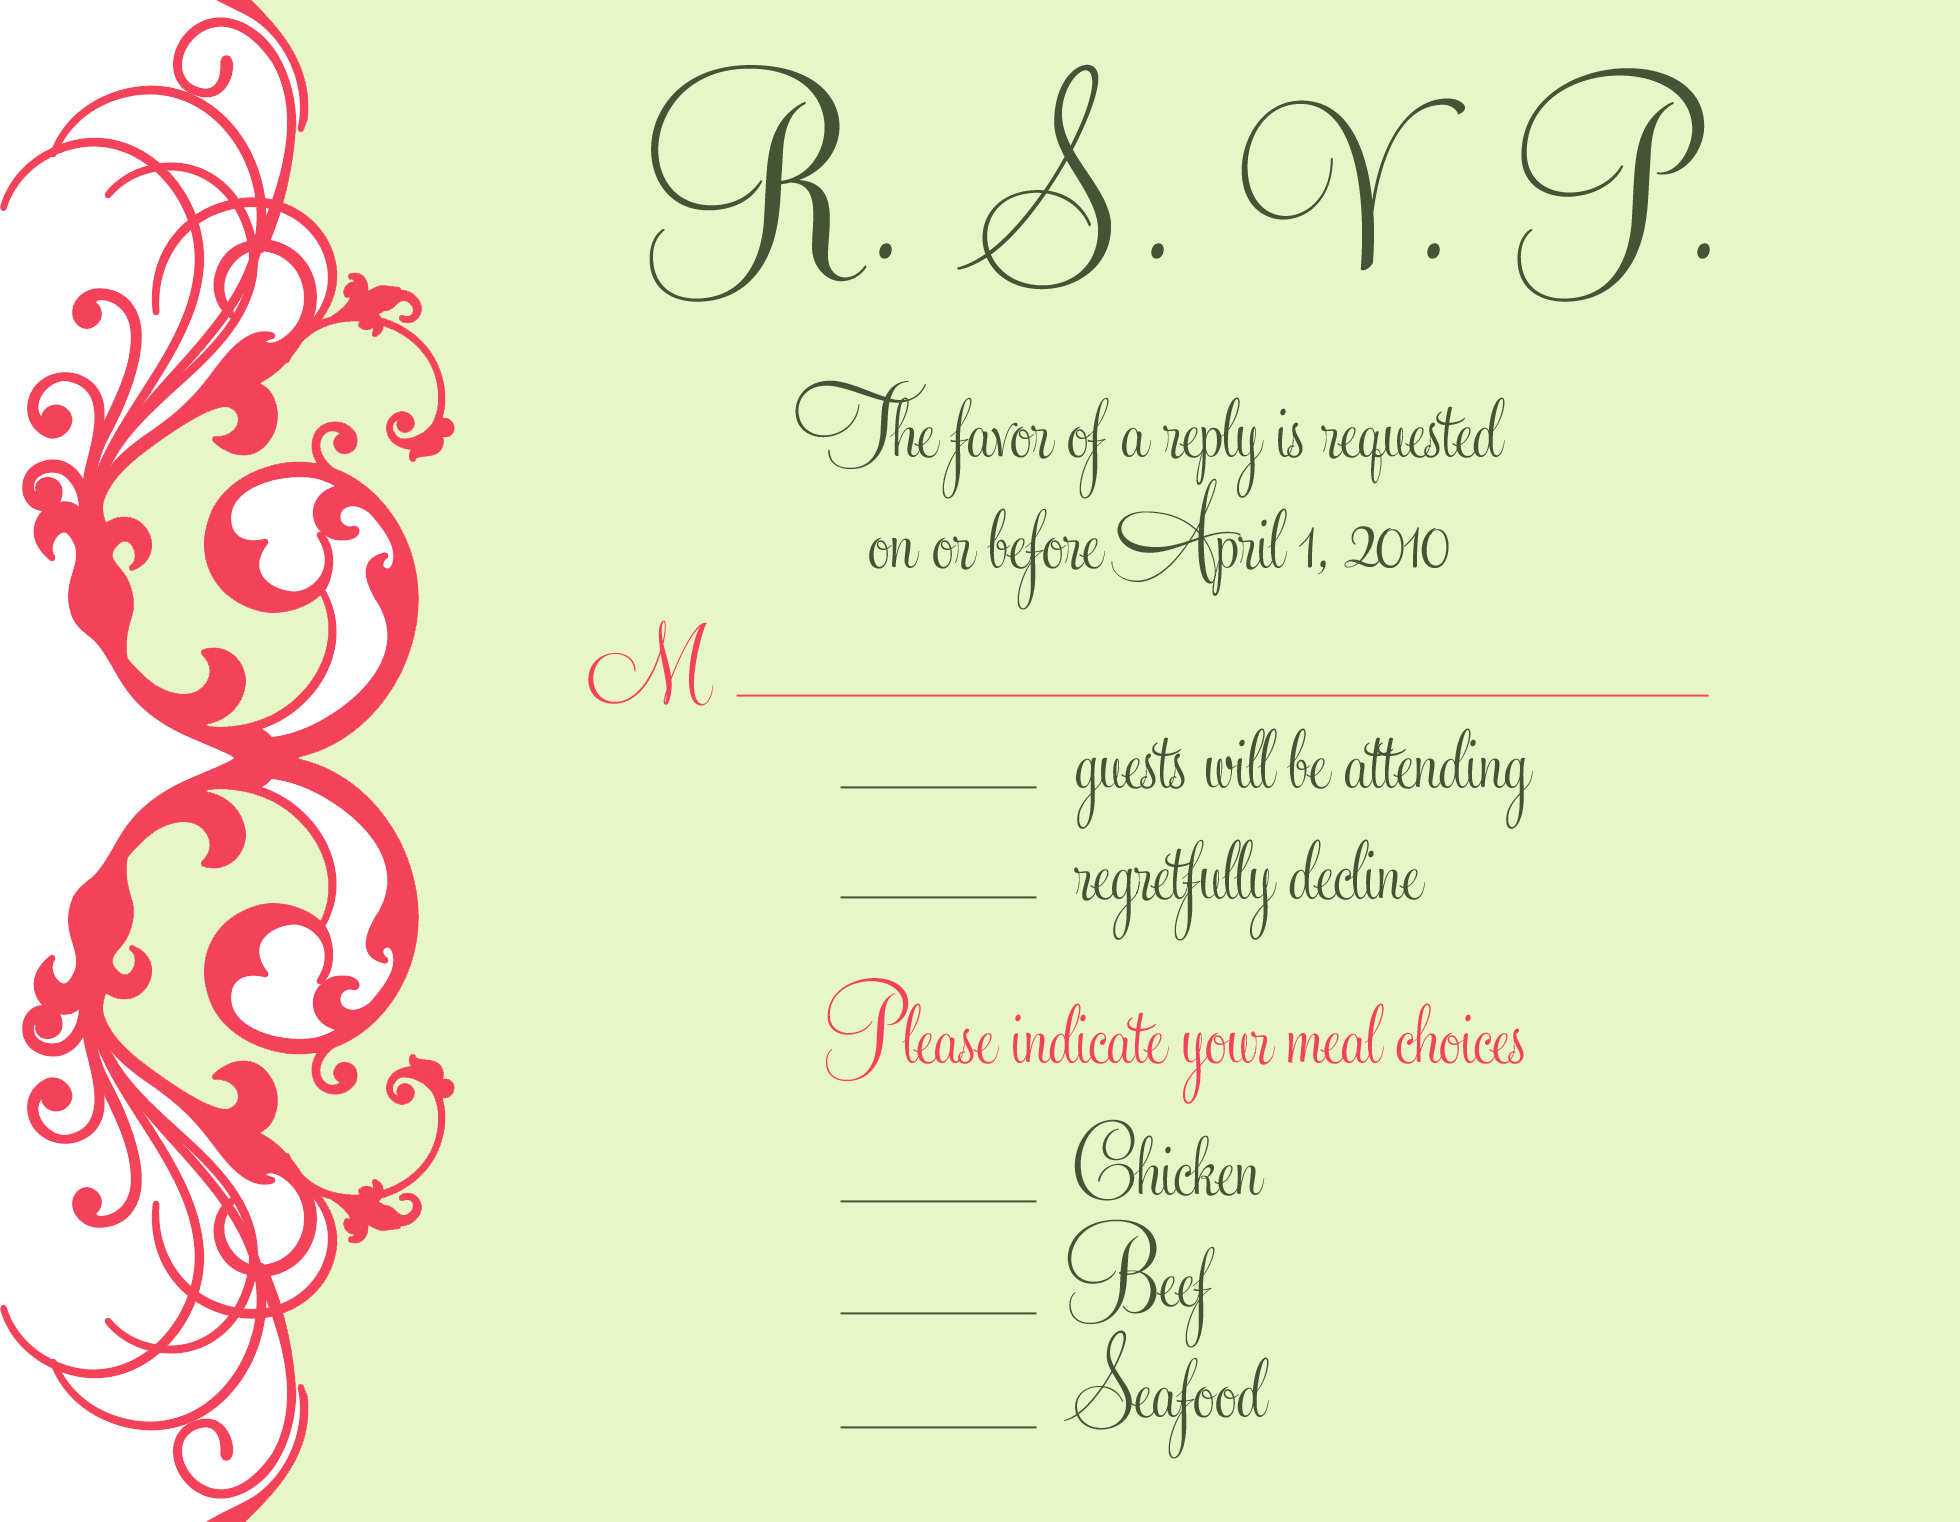 Stationery, white, orange, pink, green, Invitations, Cards, Wedding, Rsvp, Mango, Response